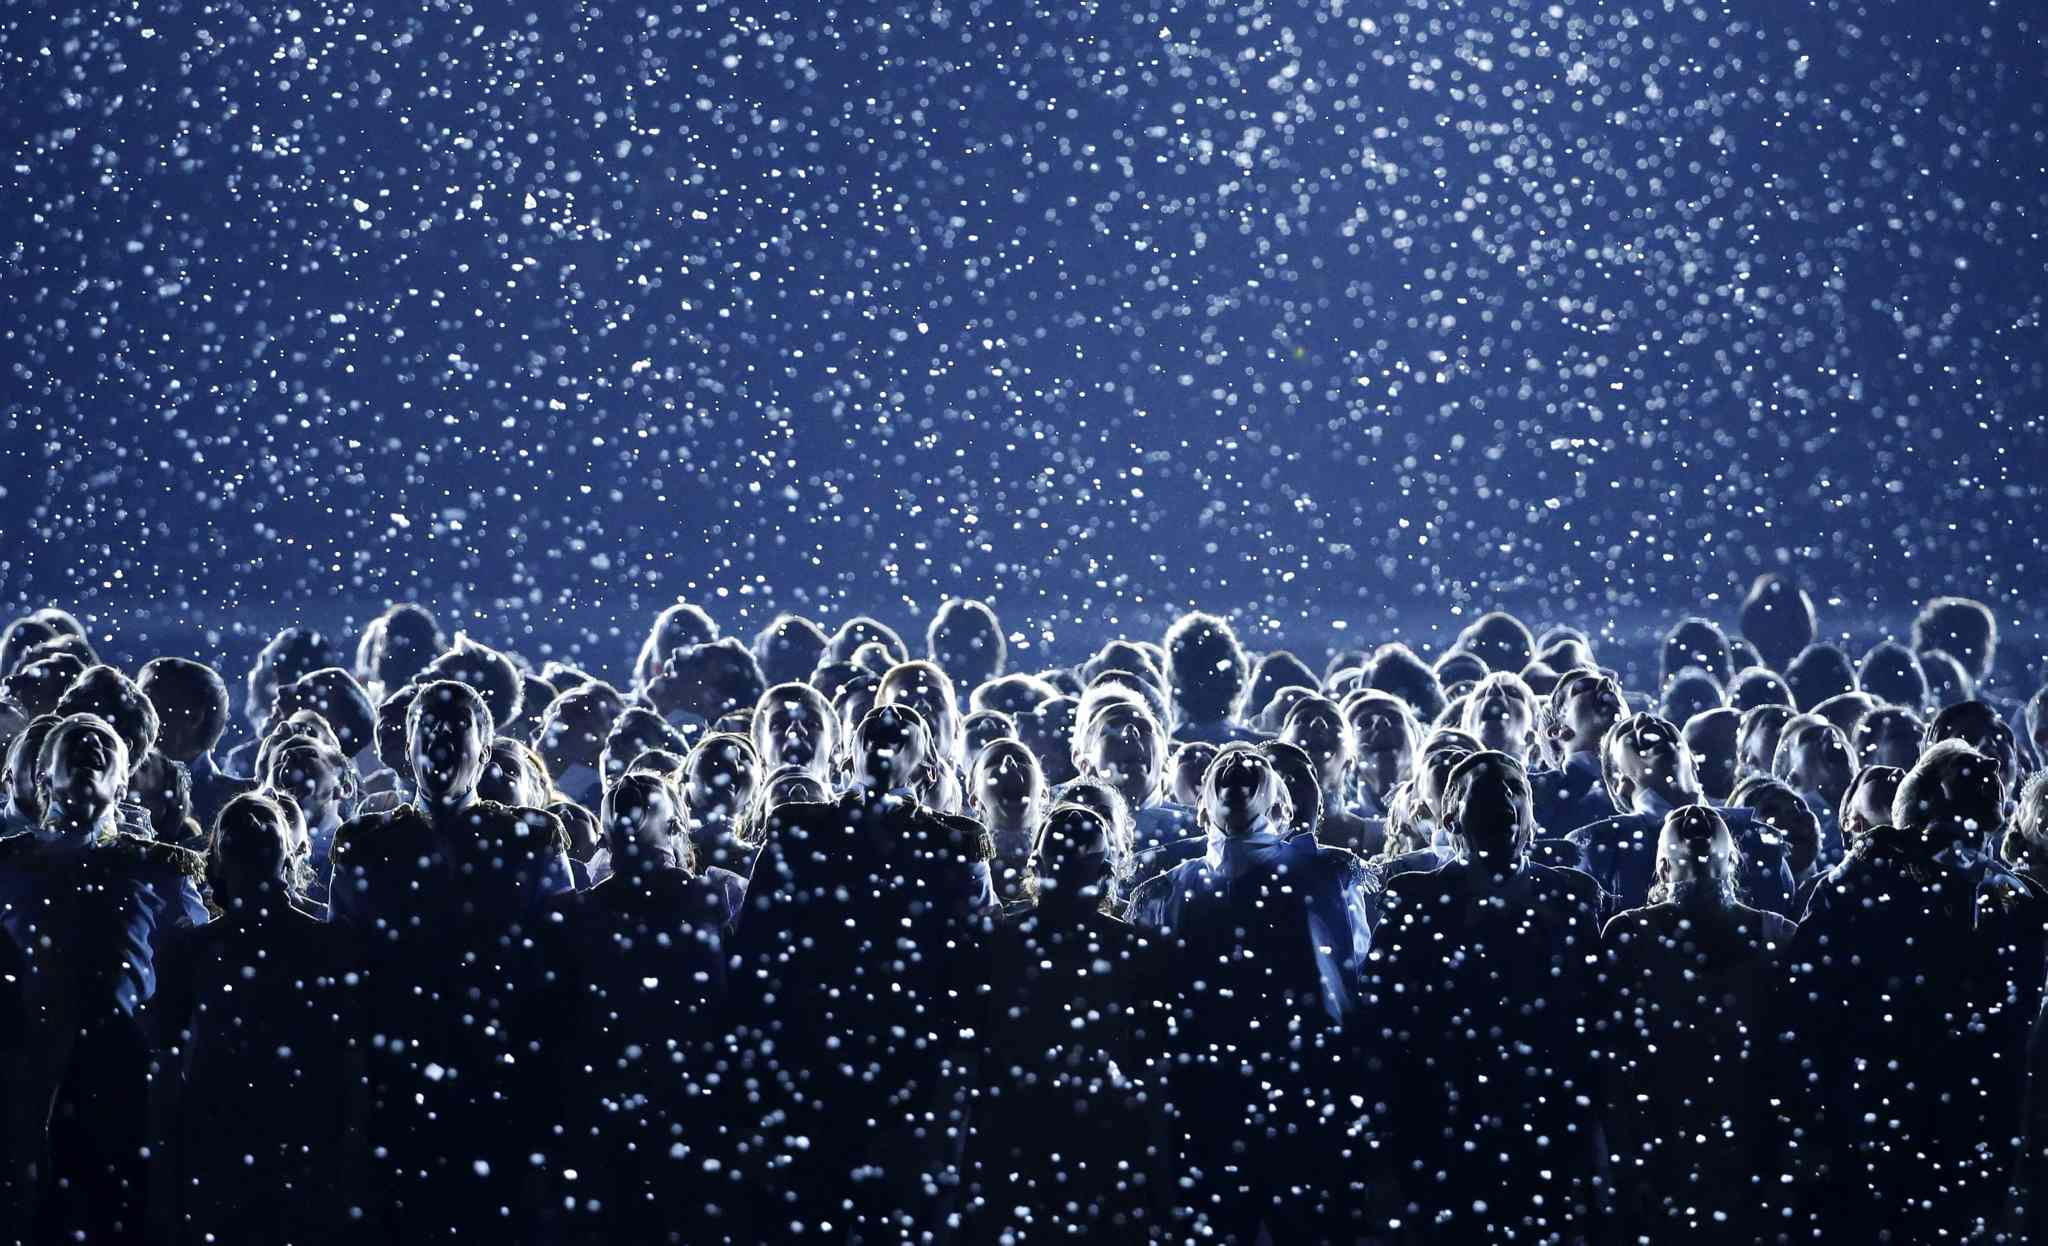 Artists perform during the opening ceremony of the 2014 Winter Olympics in Sochi, Russia, Friday, Feb. 7, 2014. (AP Photo/Mark Humphrey)